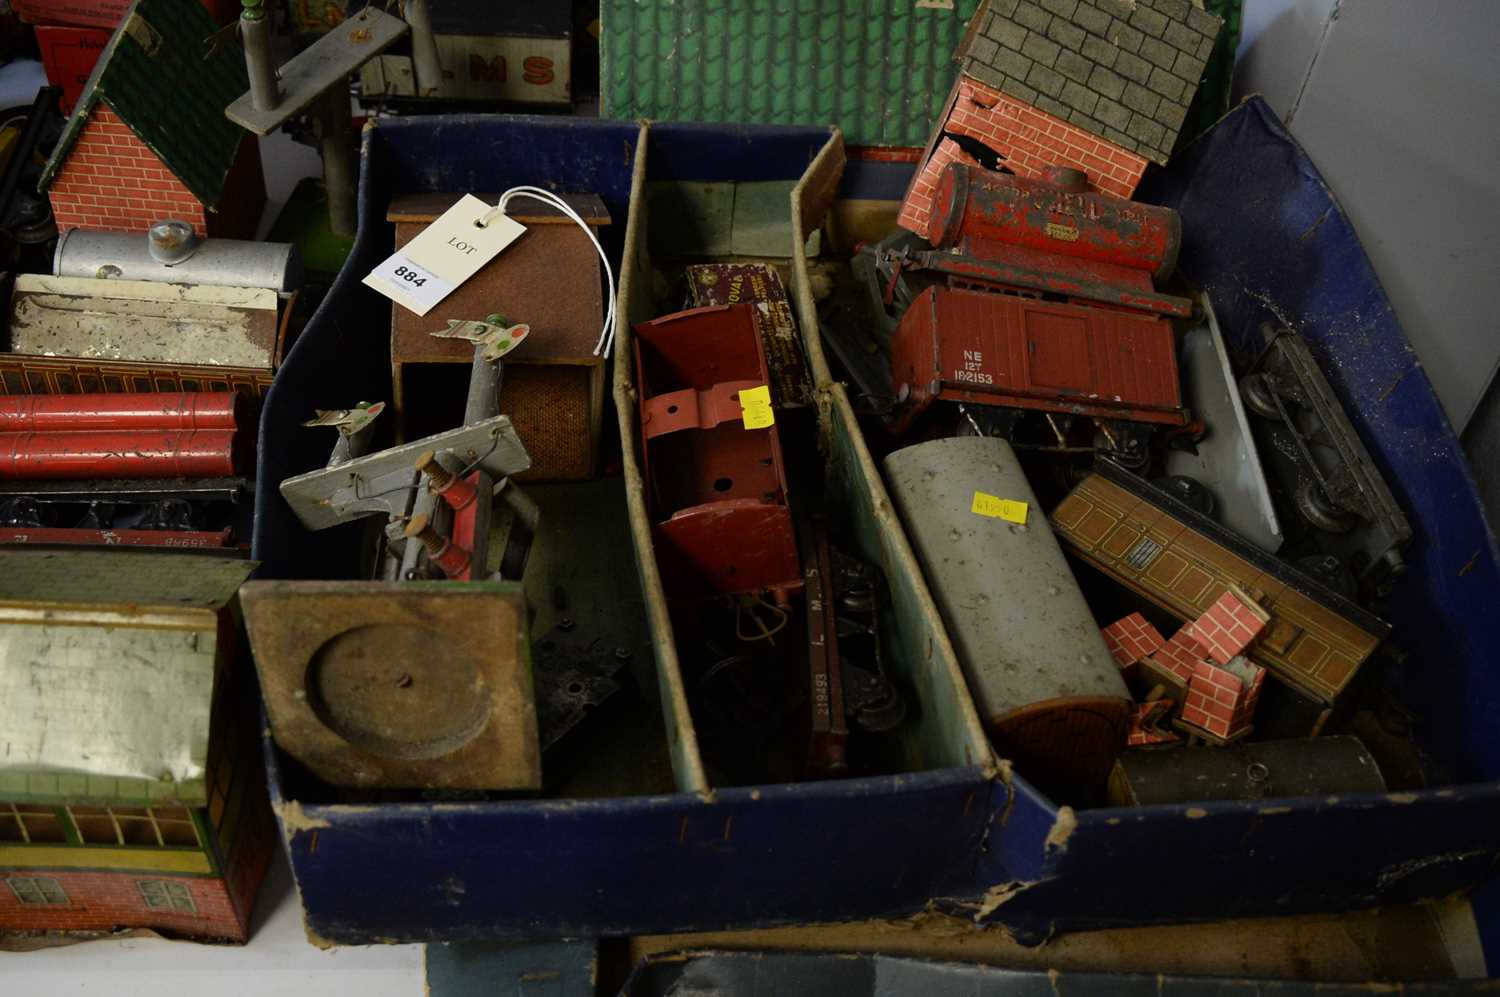 Qty 0-gauge model railway, and other accessories. - Image 2 of 3